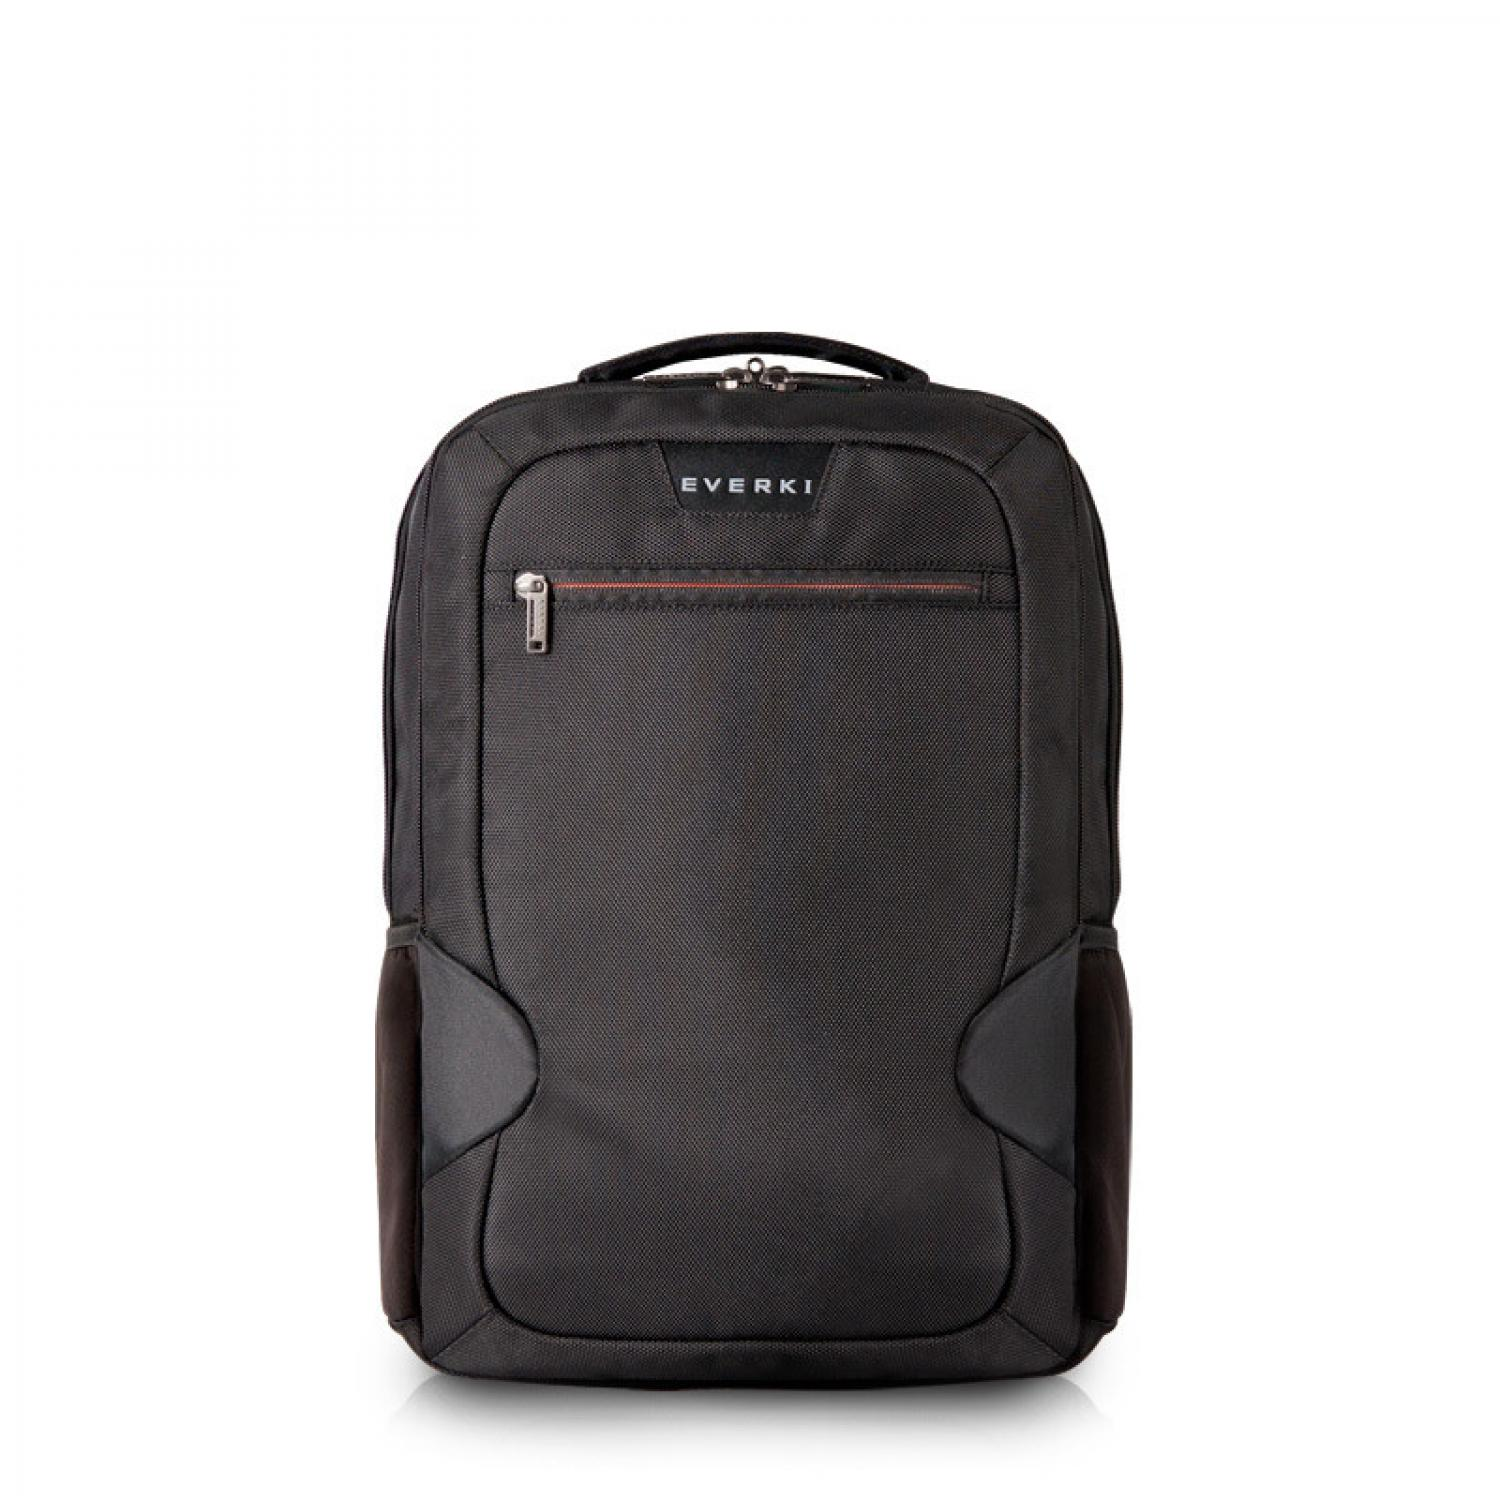 Everki EKP118 Studio Slim Laptop Backpack Up to 14 Inch/Macbook Pro 15